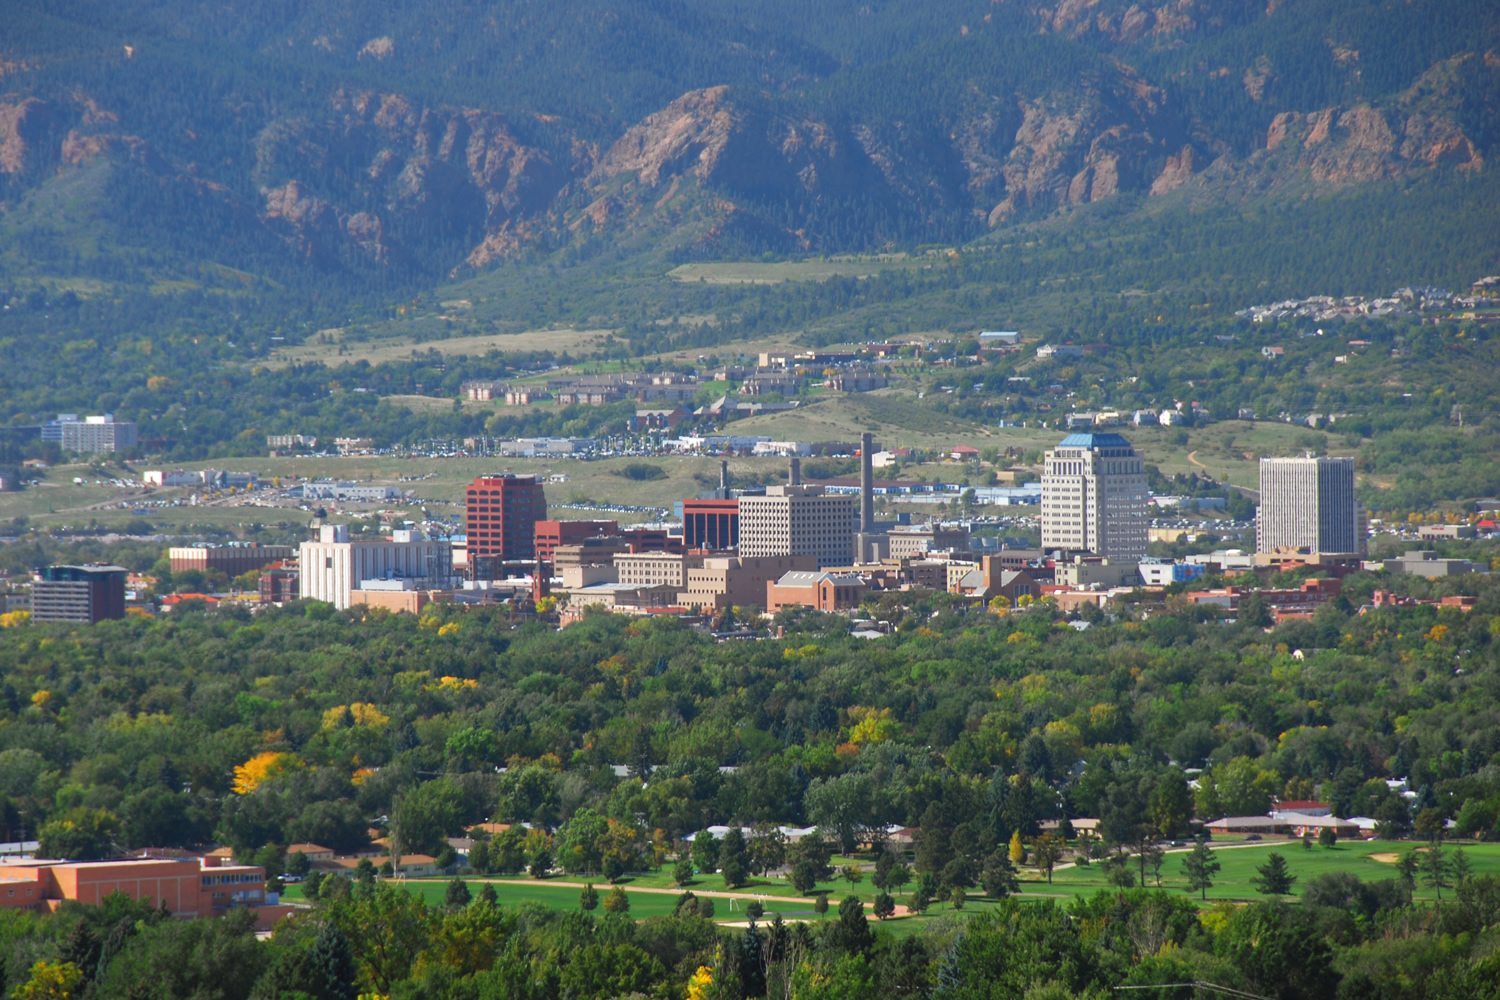 colorado springs co homes for sale real estate realty real estate for sale in colorado